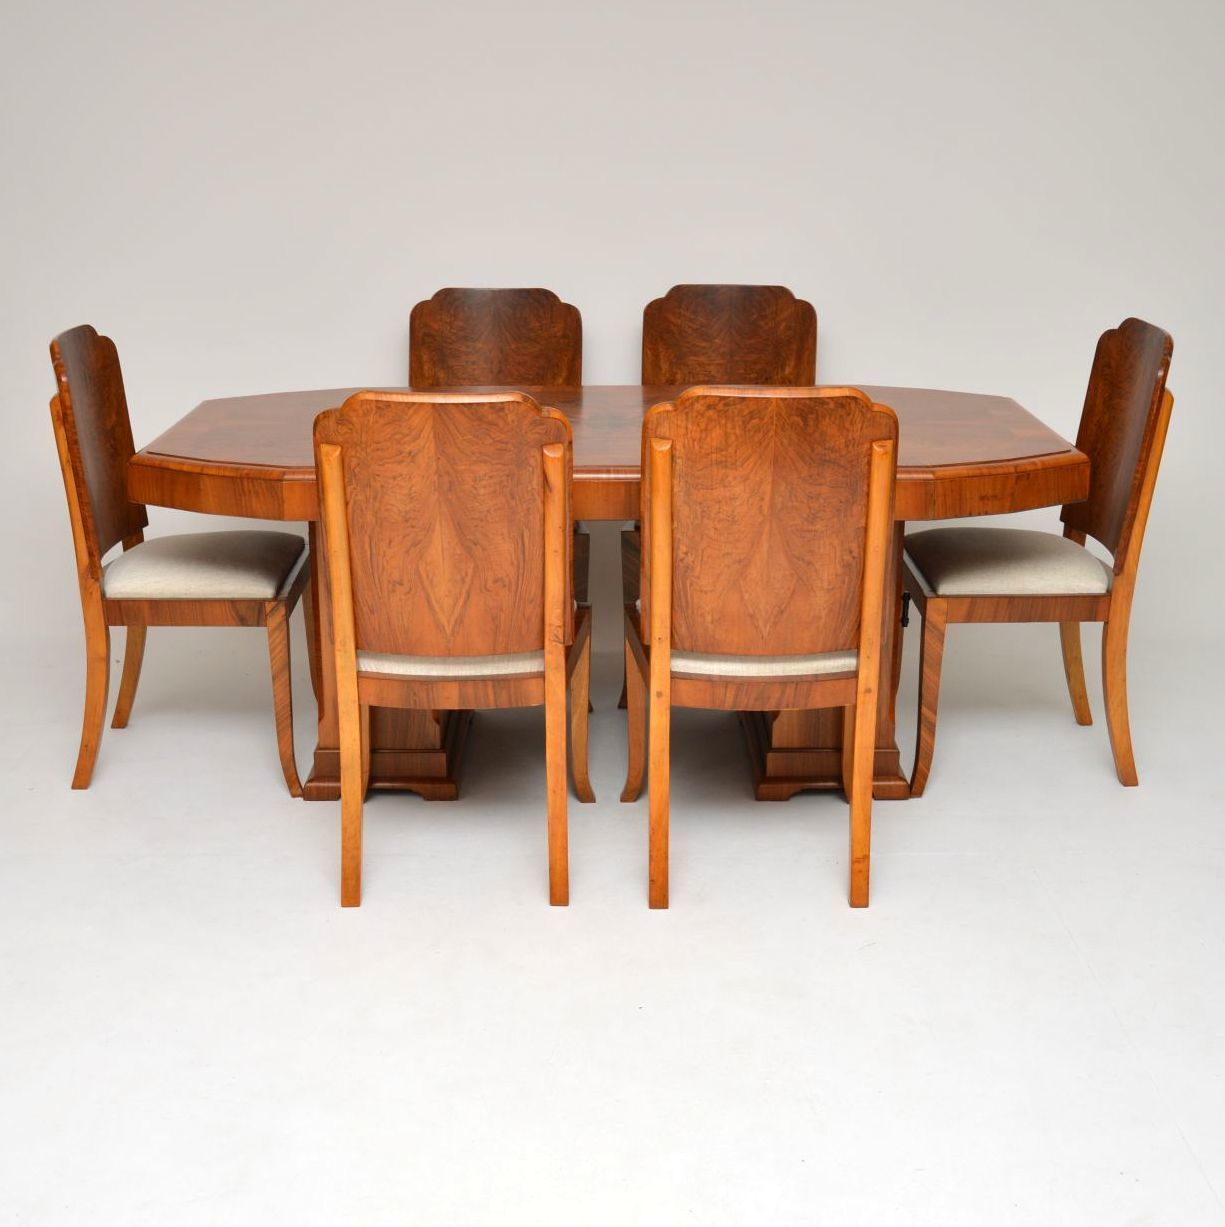 Peachy 1920S Original Art Deco Walnut Dining Table Chairs Cjindustries Chair Design For Home Cjindustriesco